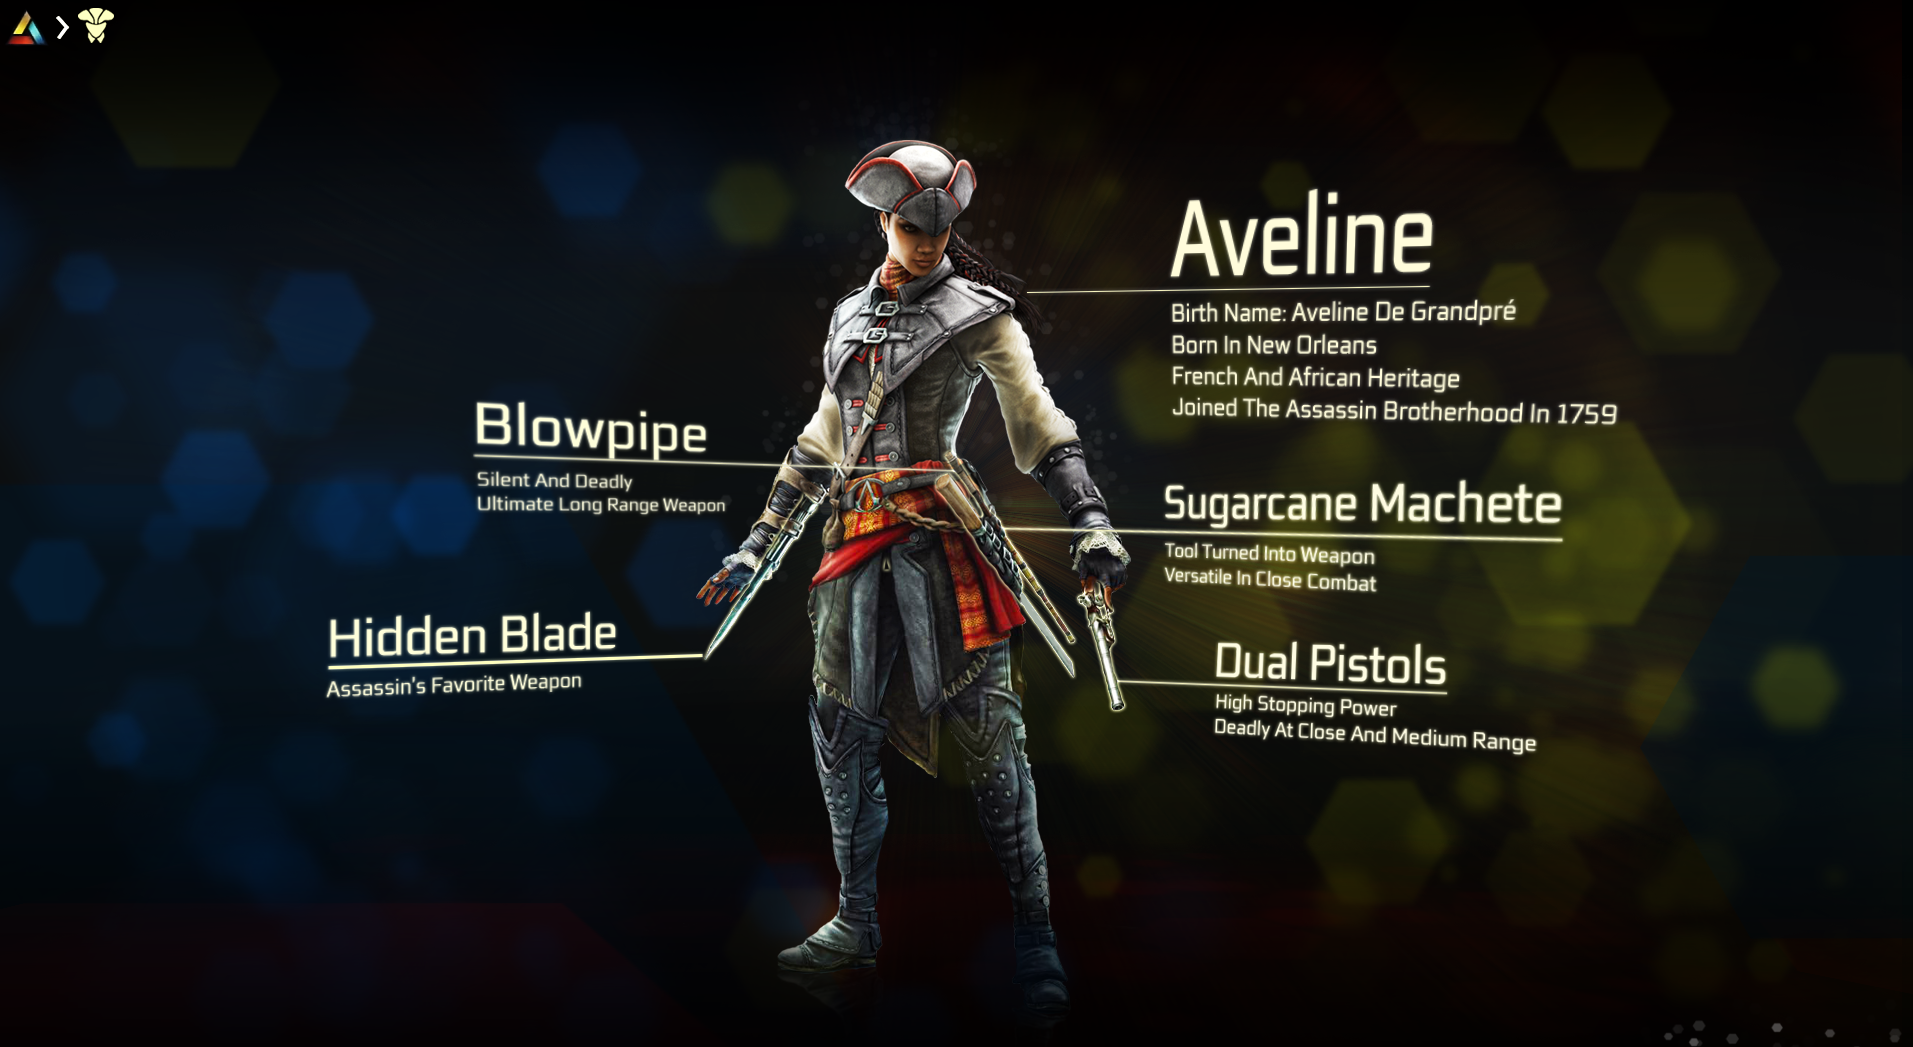 Aveline assassin creed porno sexy picture